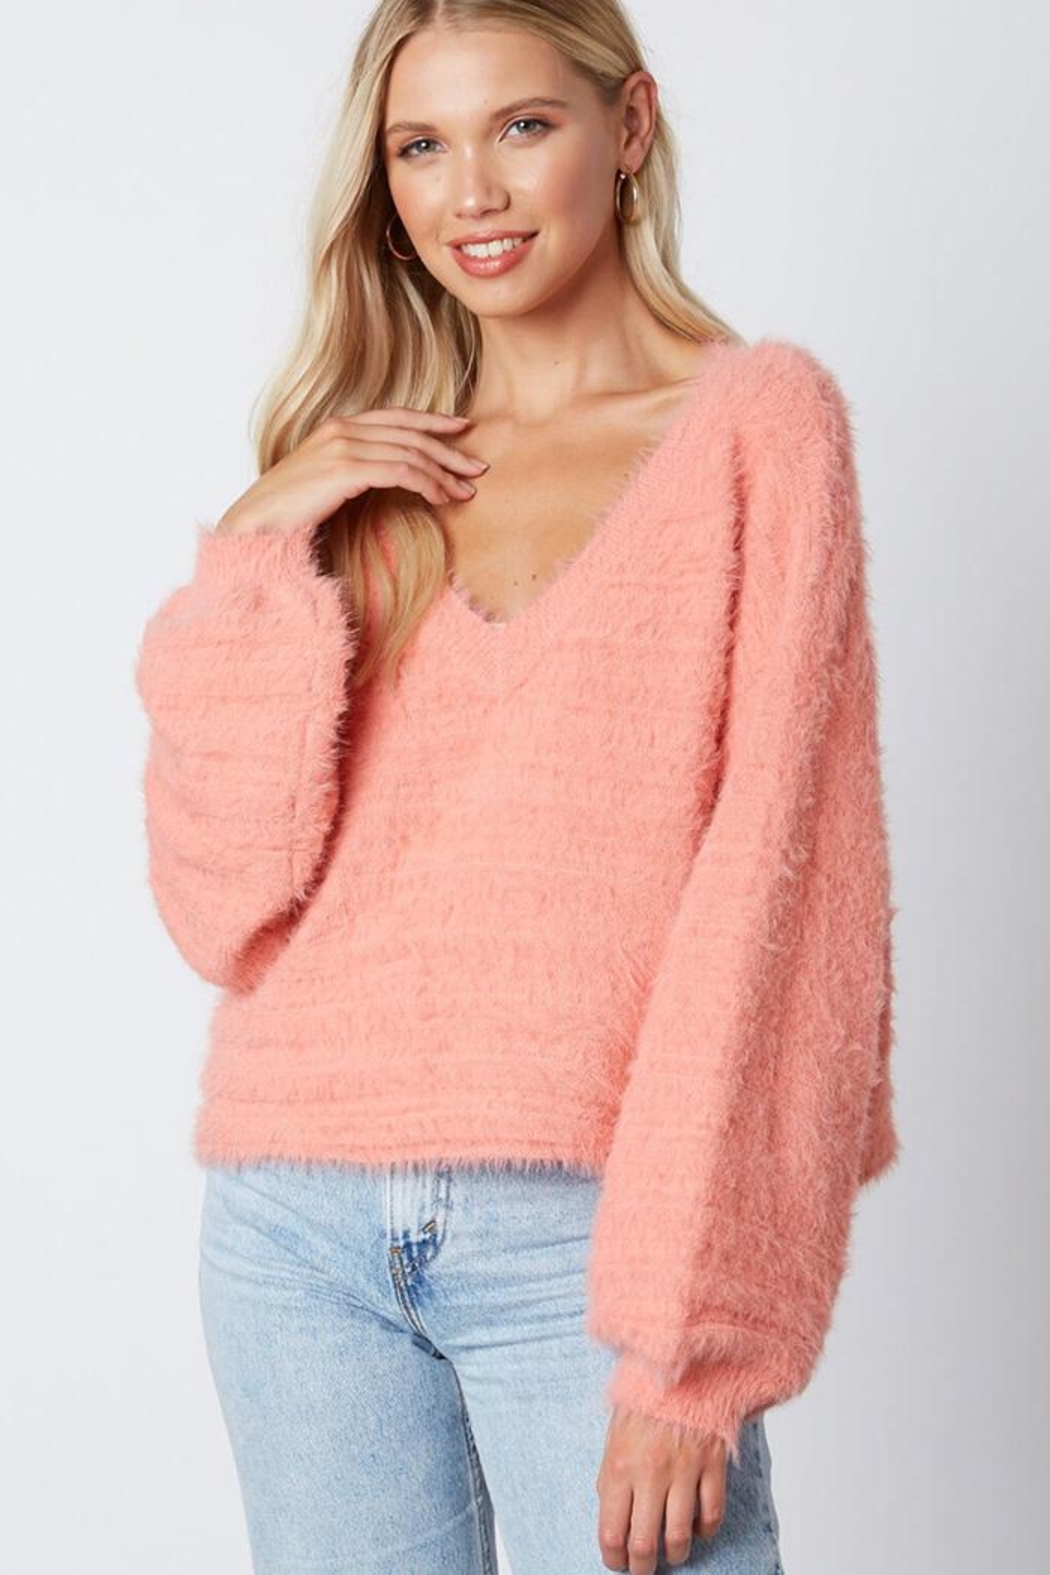 Cotton Candy LA Fuzzy v-Neck Sweaater - Front Full Image